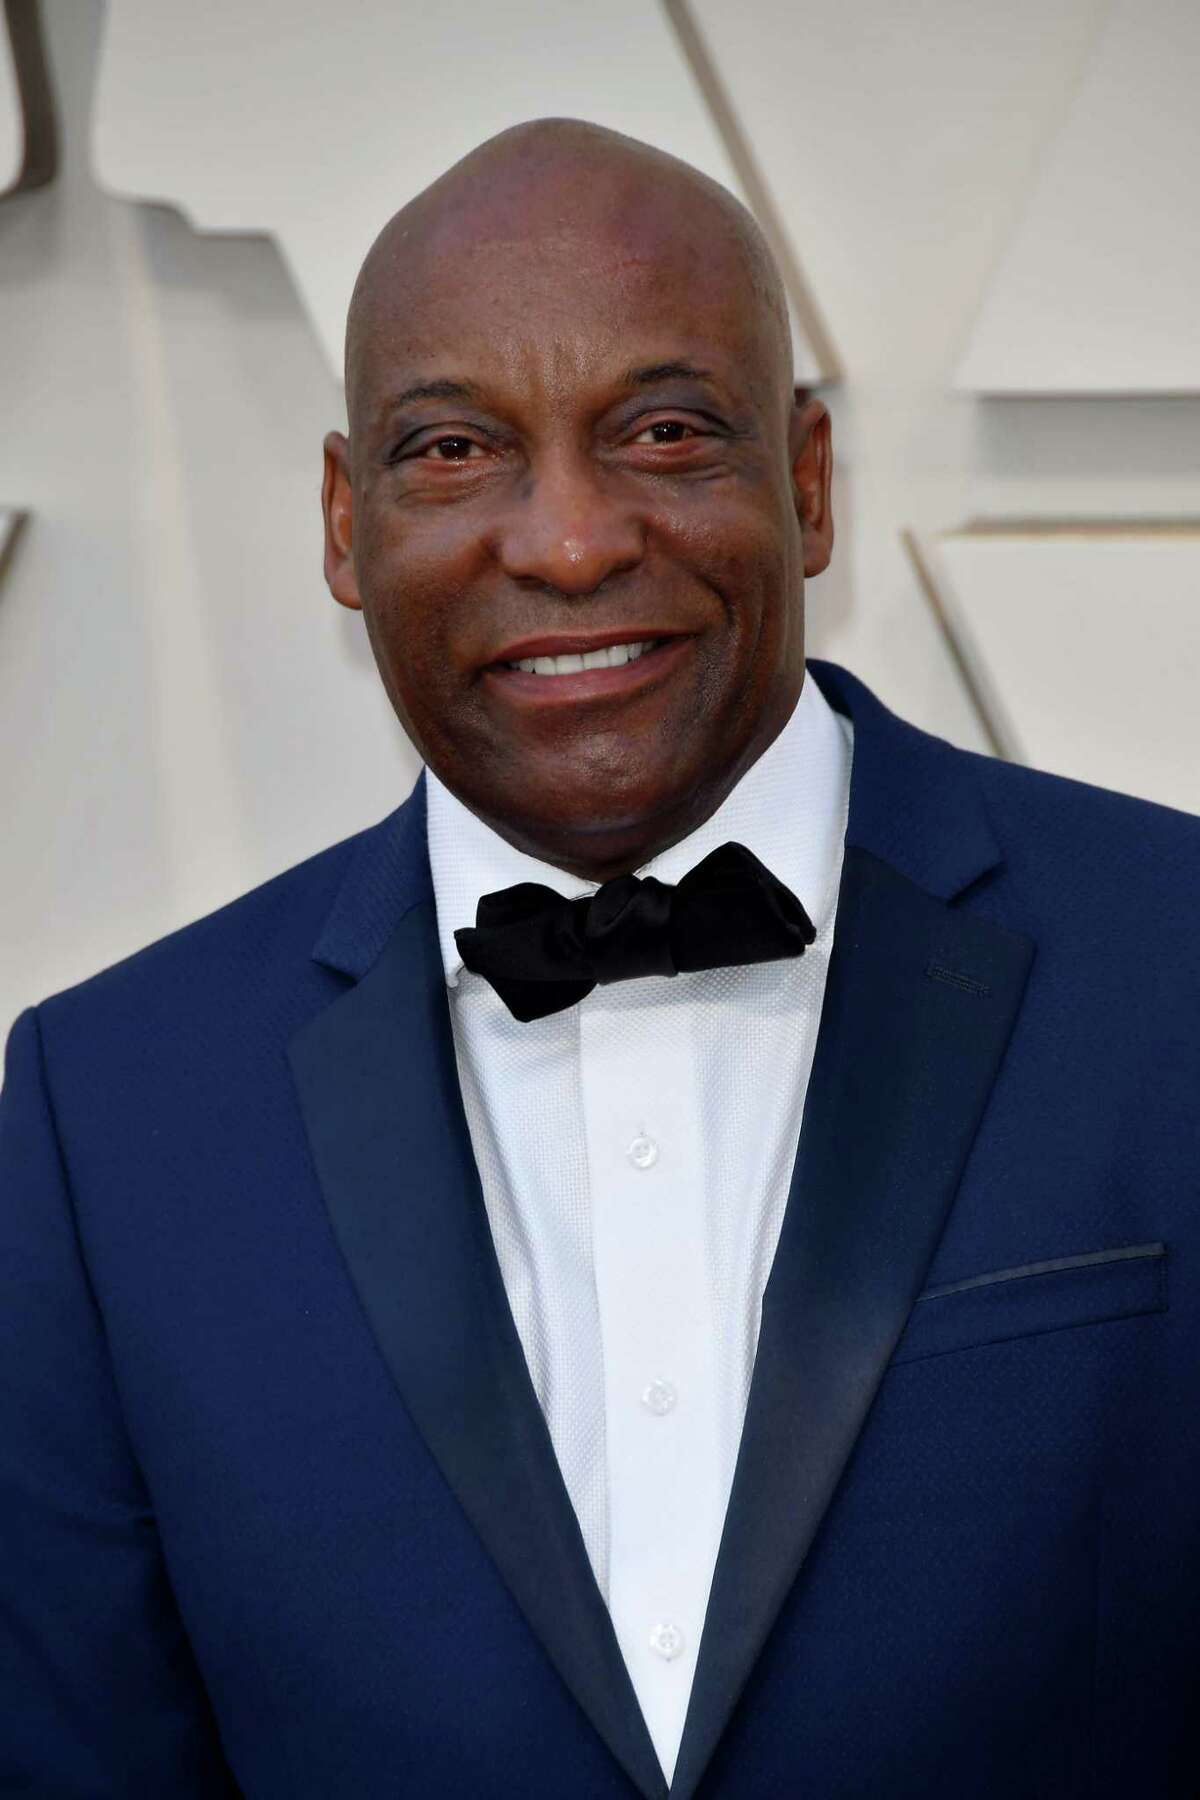 Director John Singleton (Pictured) both died their early 50s of a stroke, which experts say is becoming more common among younger Americans. (Sthanlee Mirador/Sipa USA/TNS)